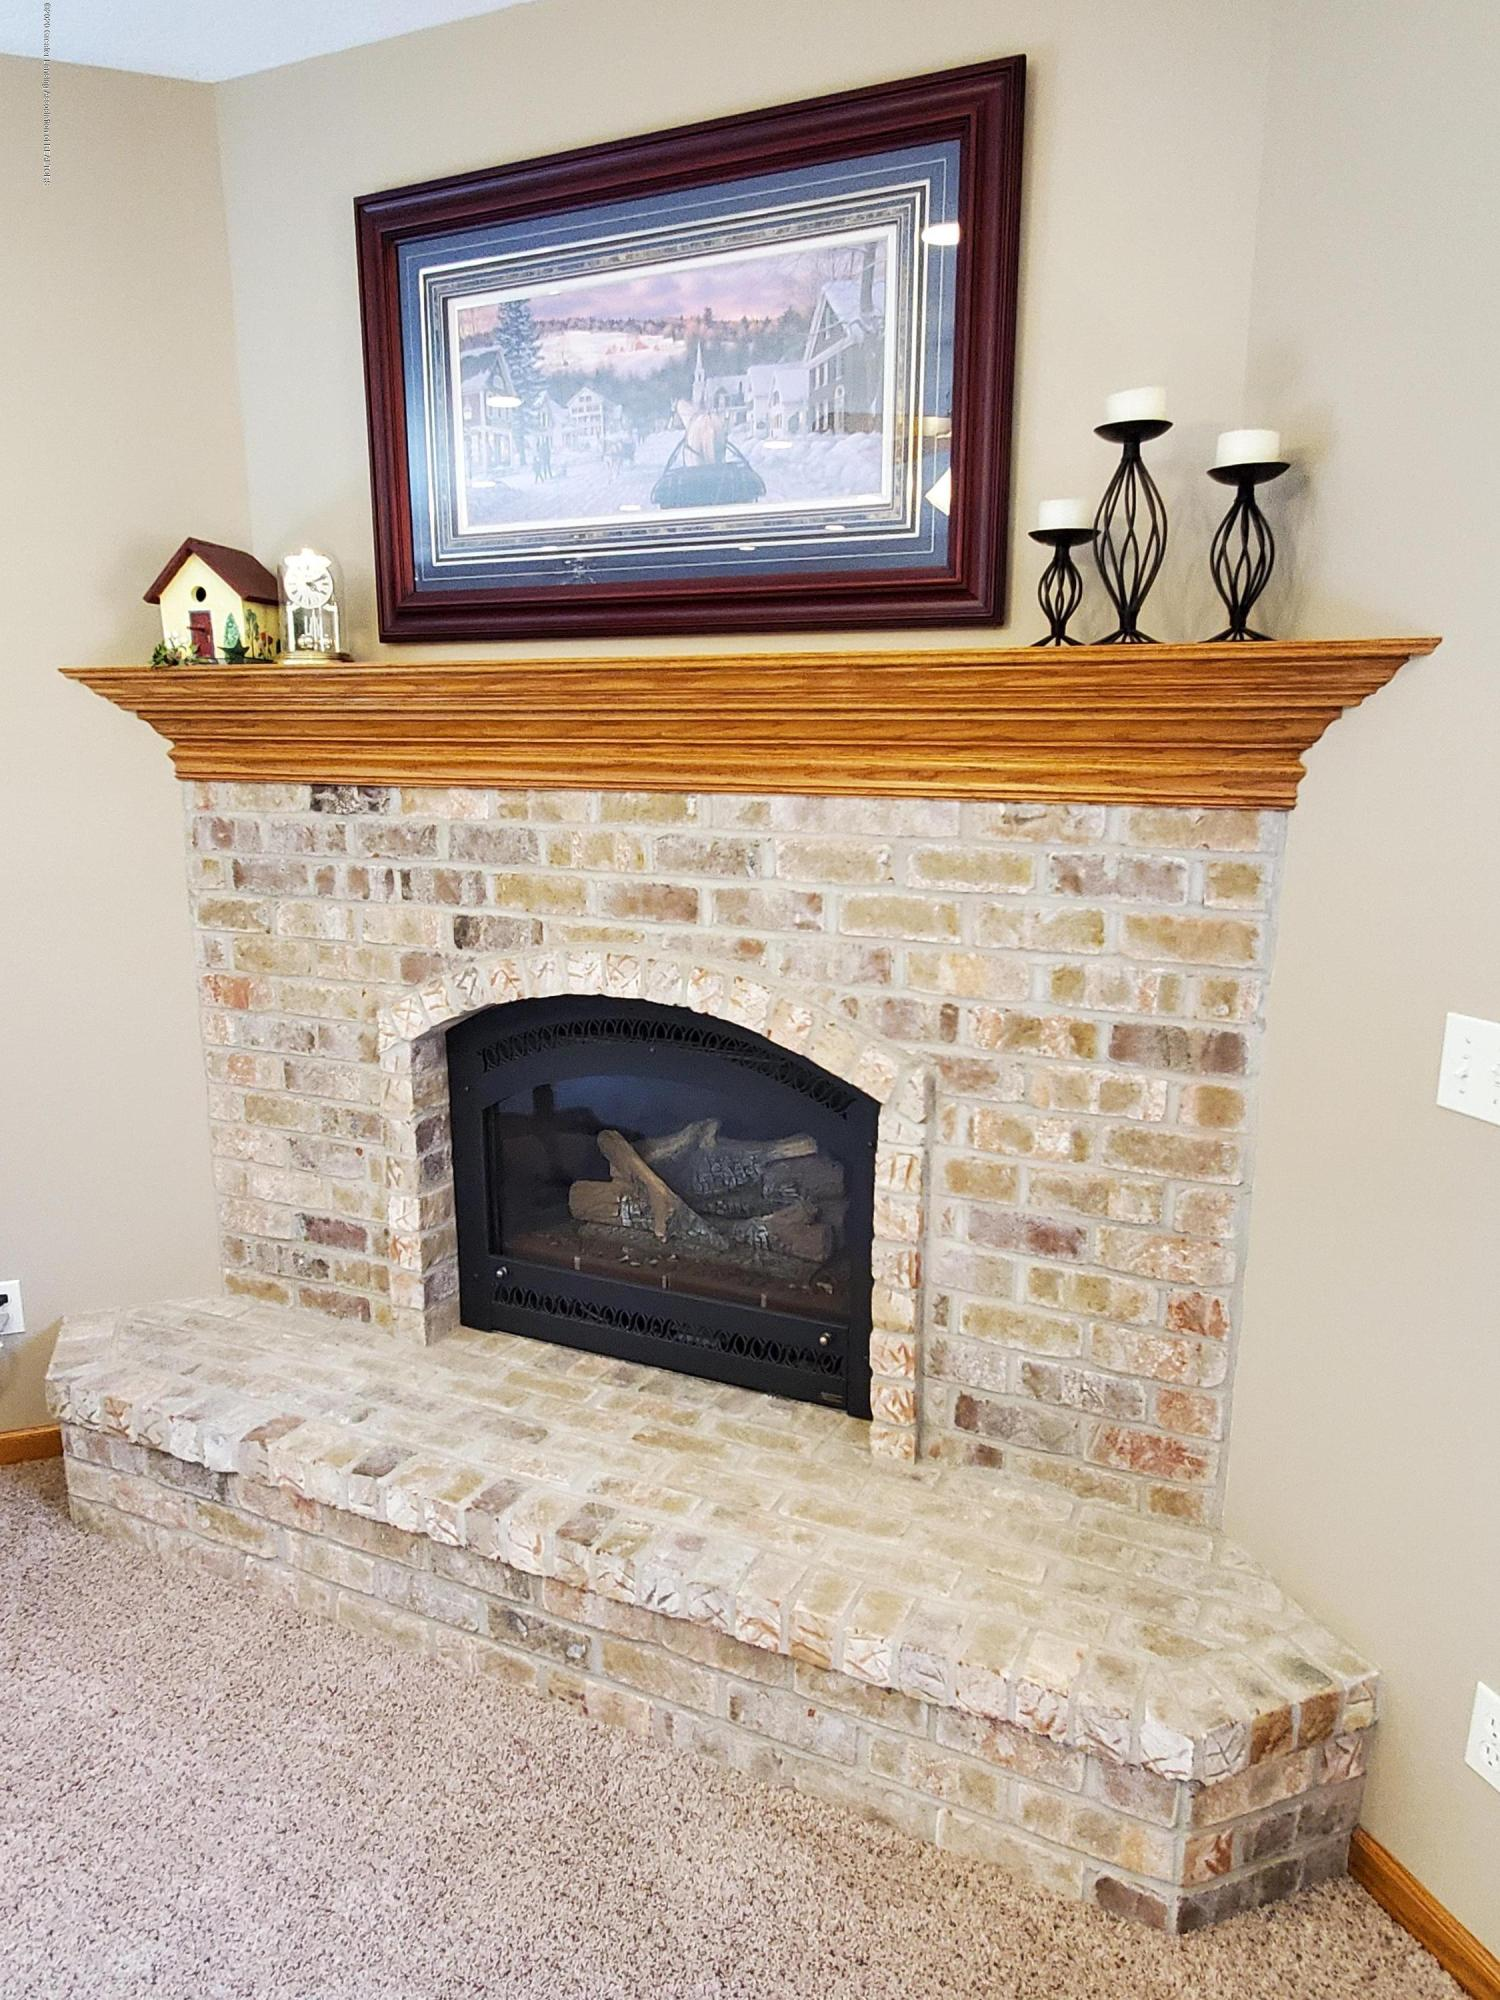 558 N Wheaton Rd - Lower Level Gas Fireplace - 47